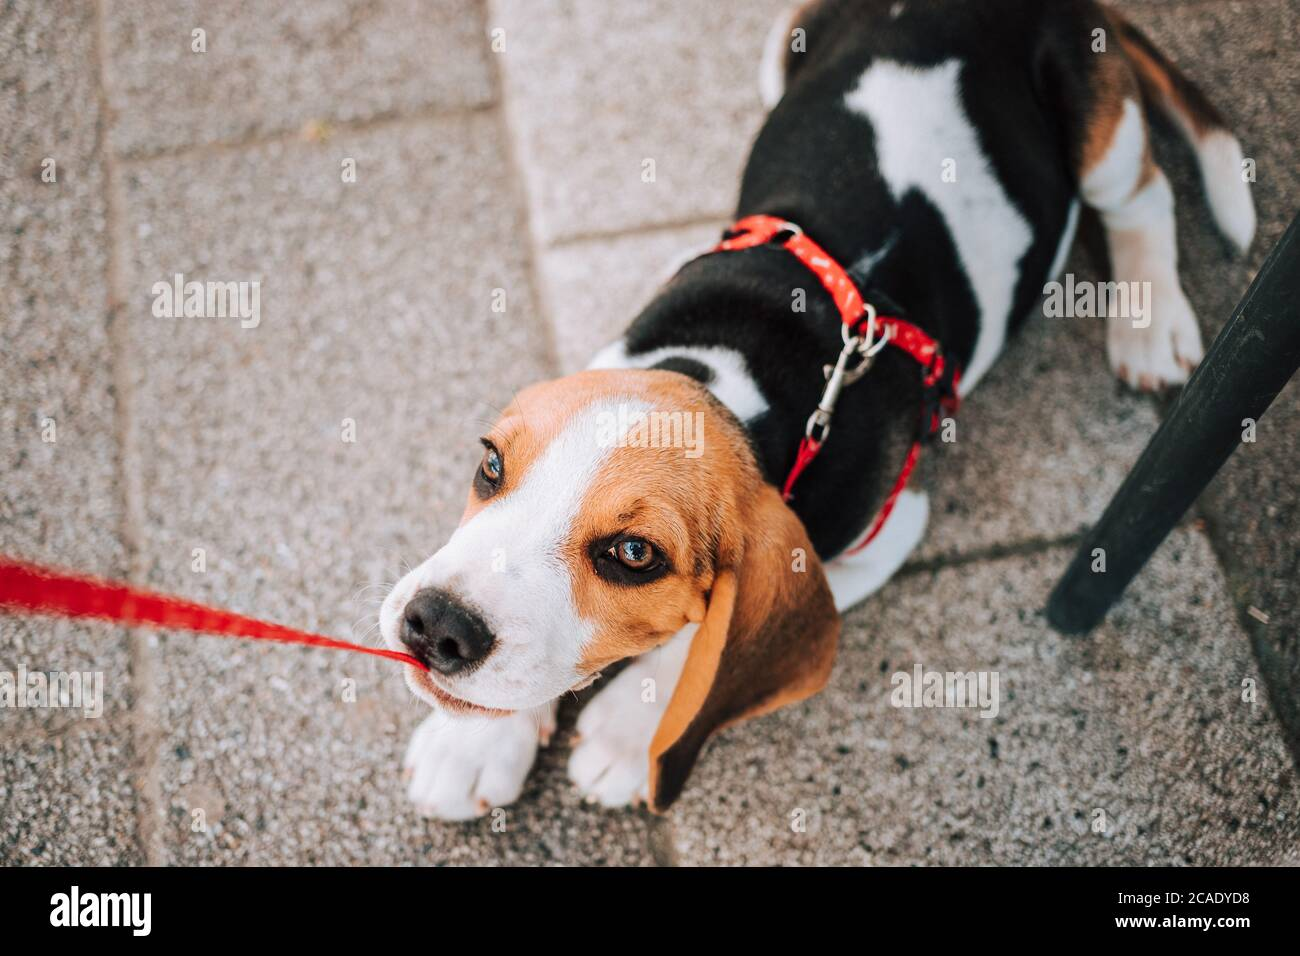 Young Beagle Puppy Playing With His Red Leash On Concrete Tiles Stock Photo Alamy